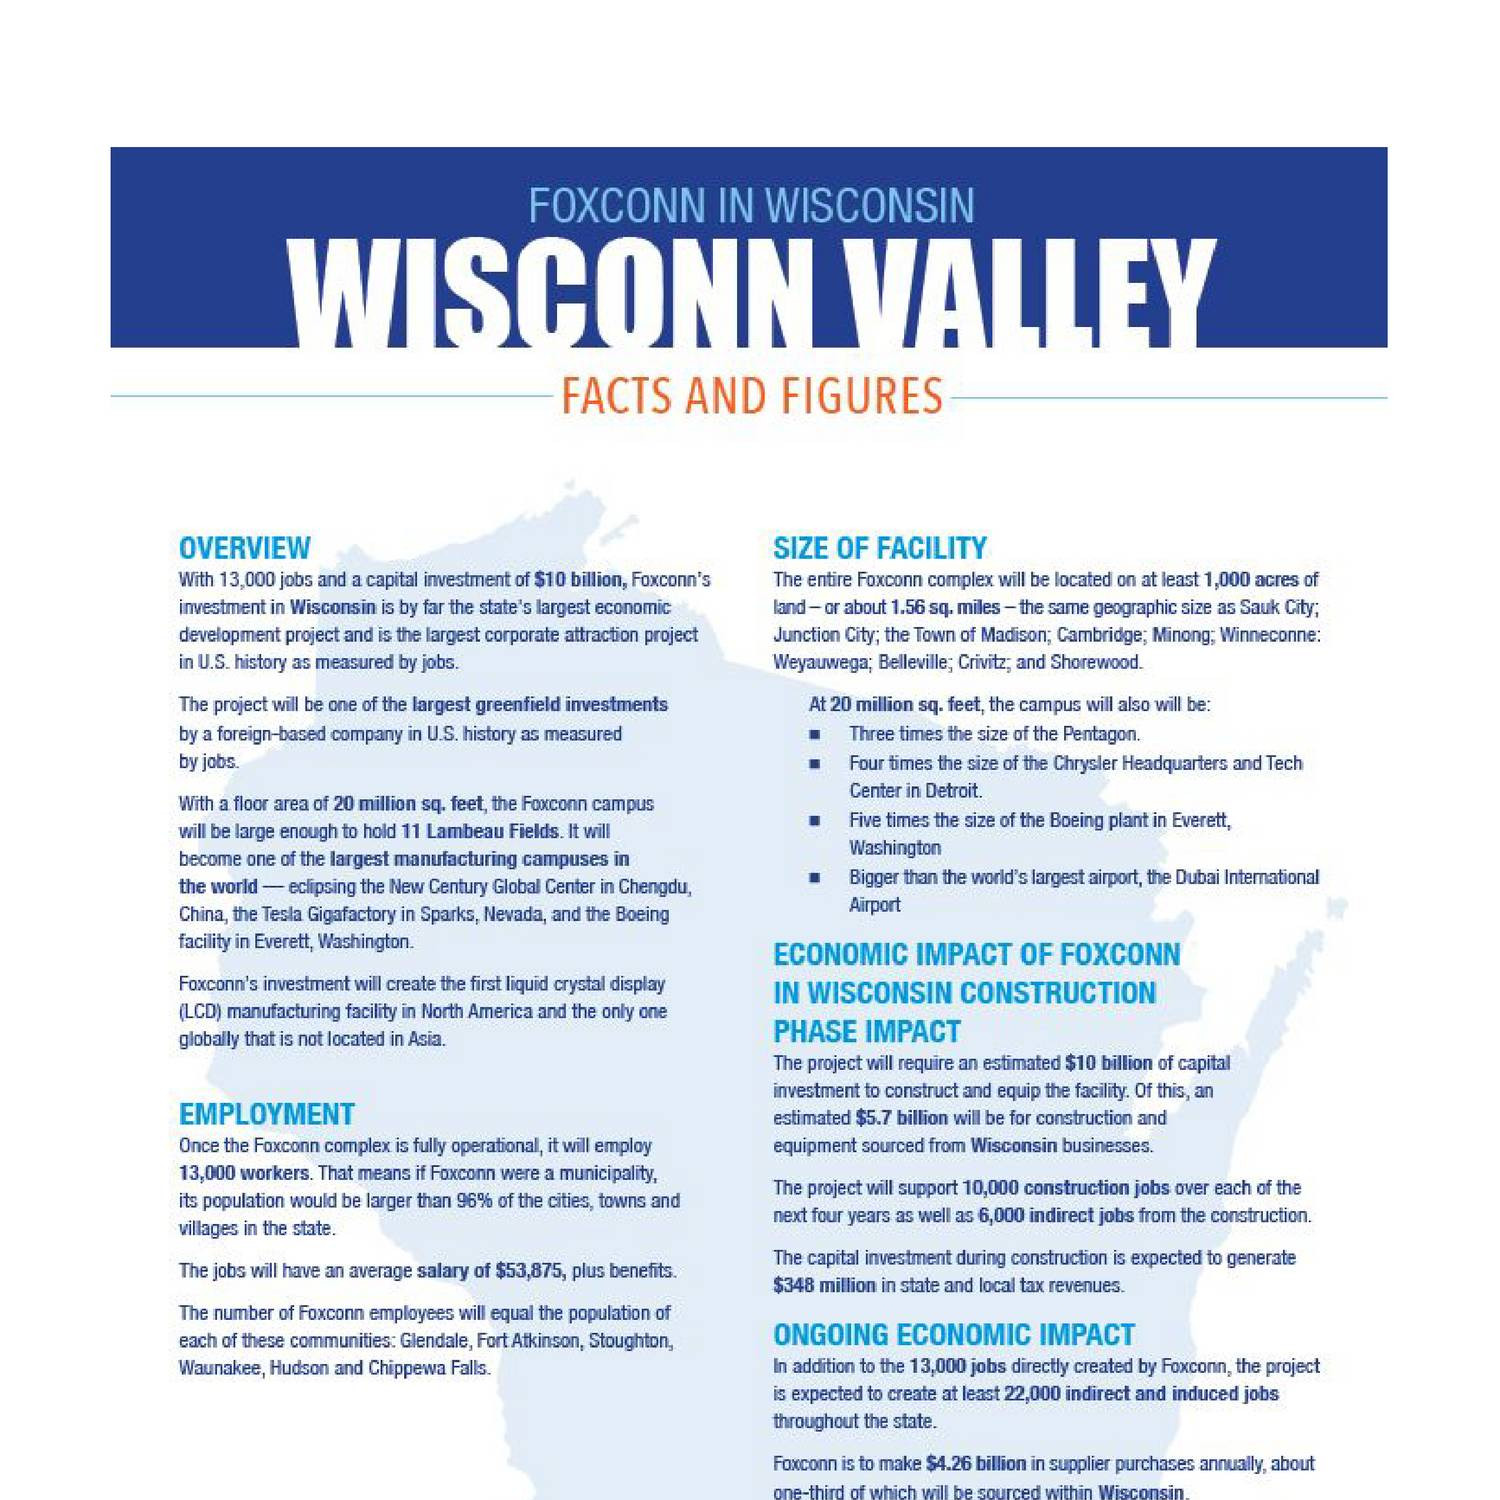 Foxconn Facts and Figures pdf | DocDroid